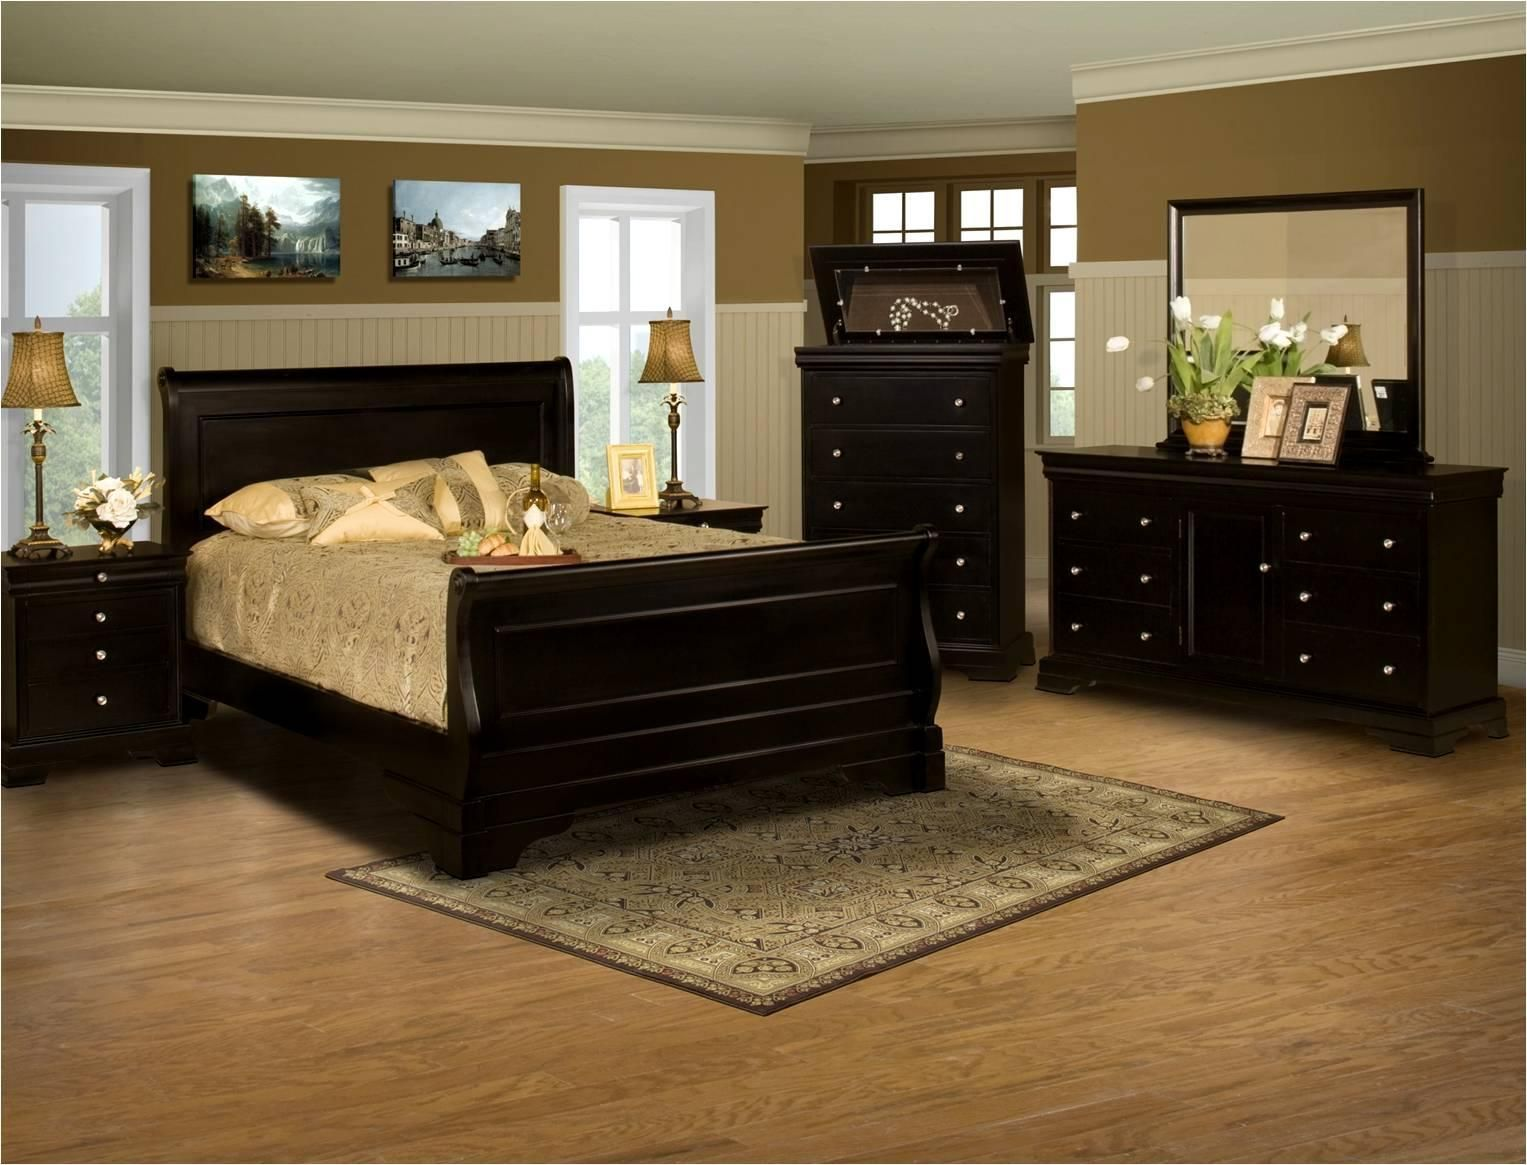 Belle Rose 4 Piece California King Bedroom Group by New